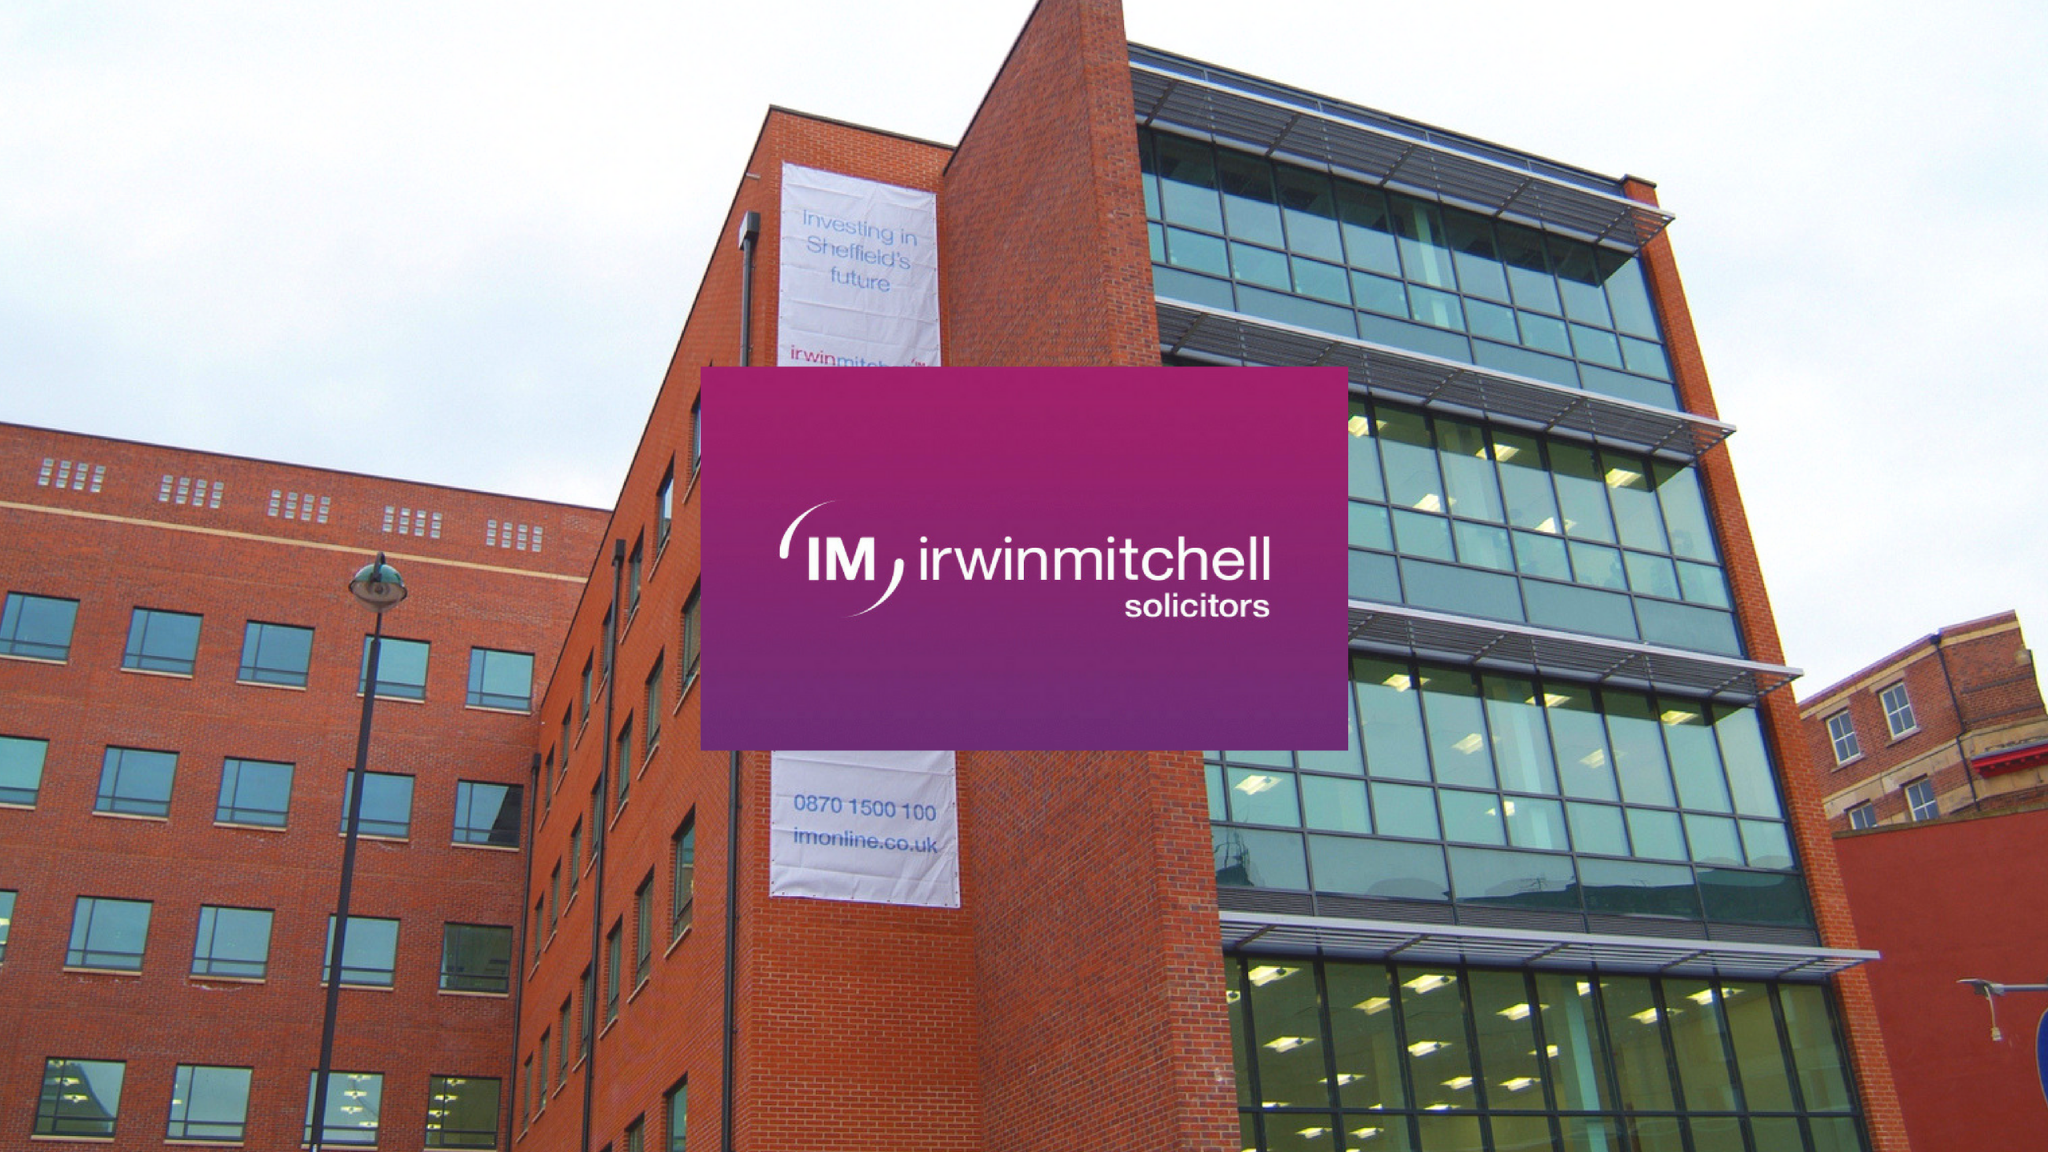 Irwin Mitchell Best Law Firms in the World UpSlide Top 50